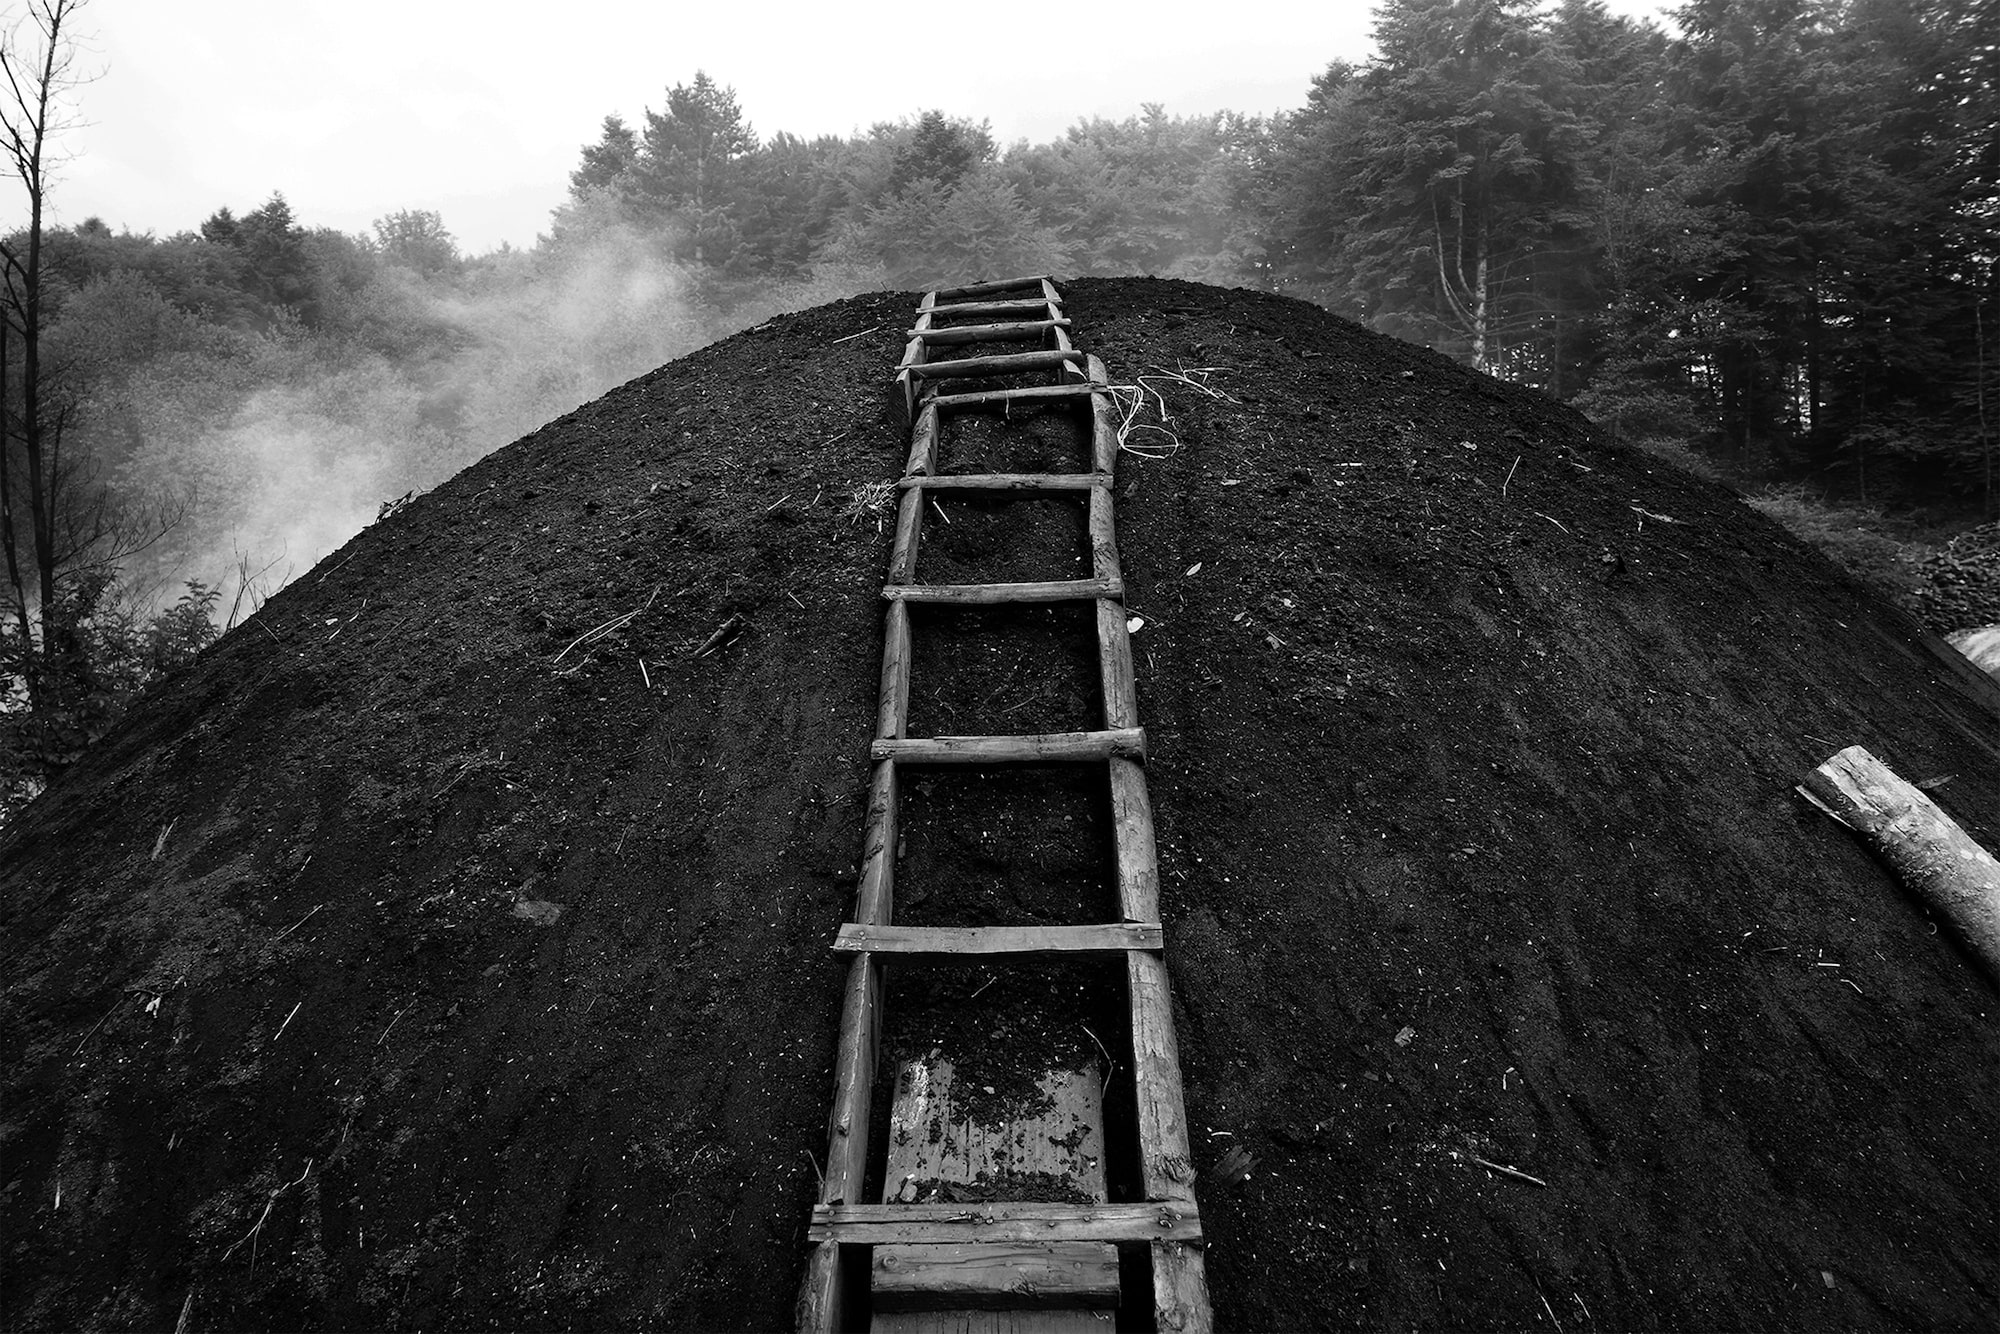 luigi baldelli sony alpha 7rIII a ladder leaning against a pile of burning charcoal